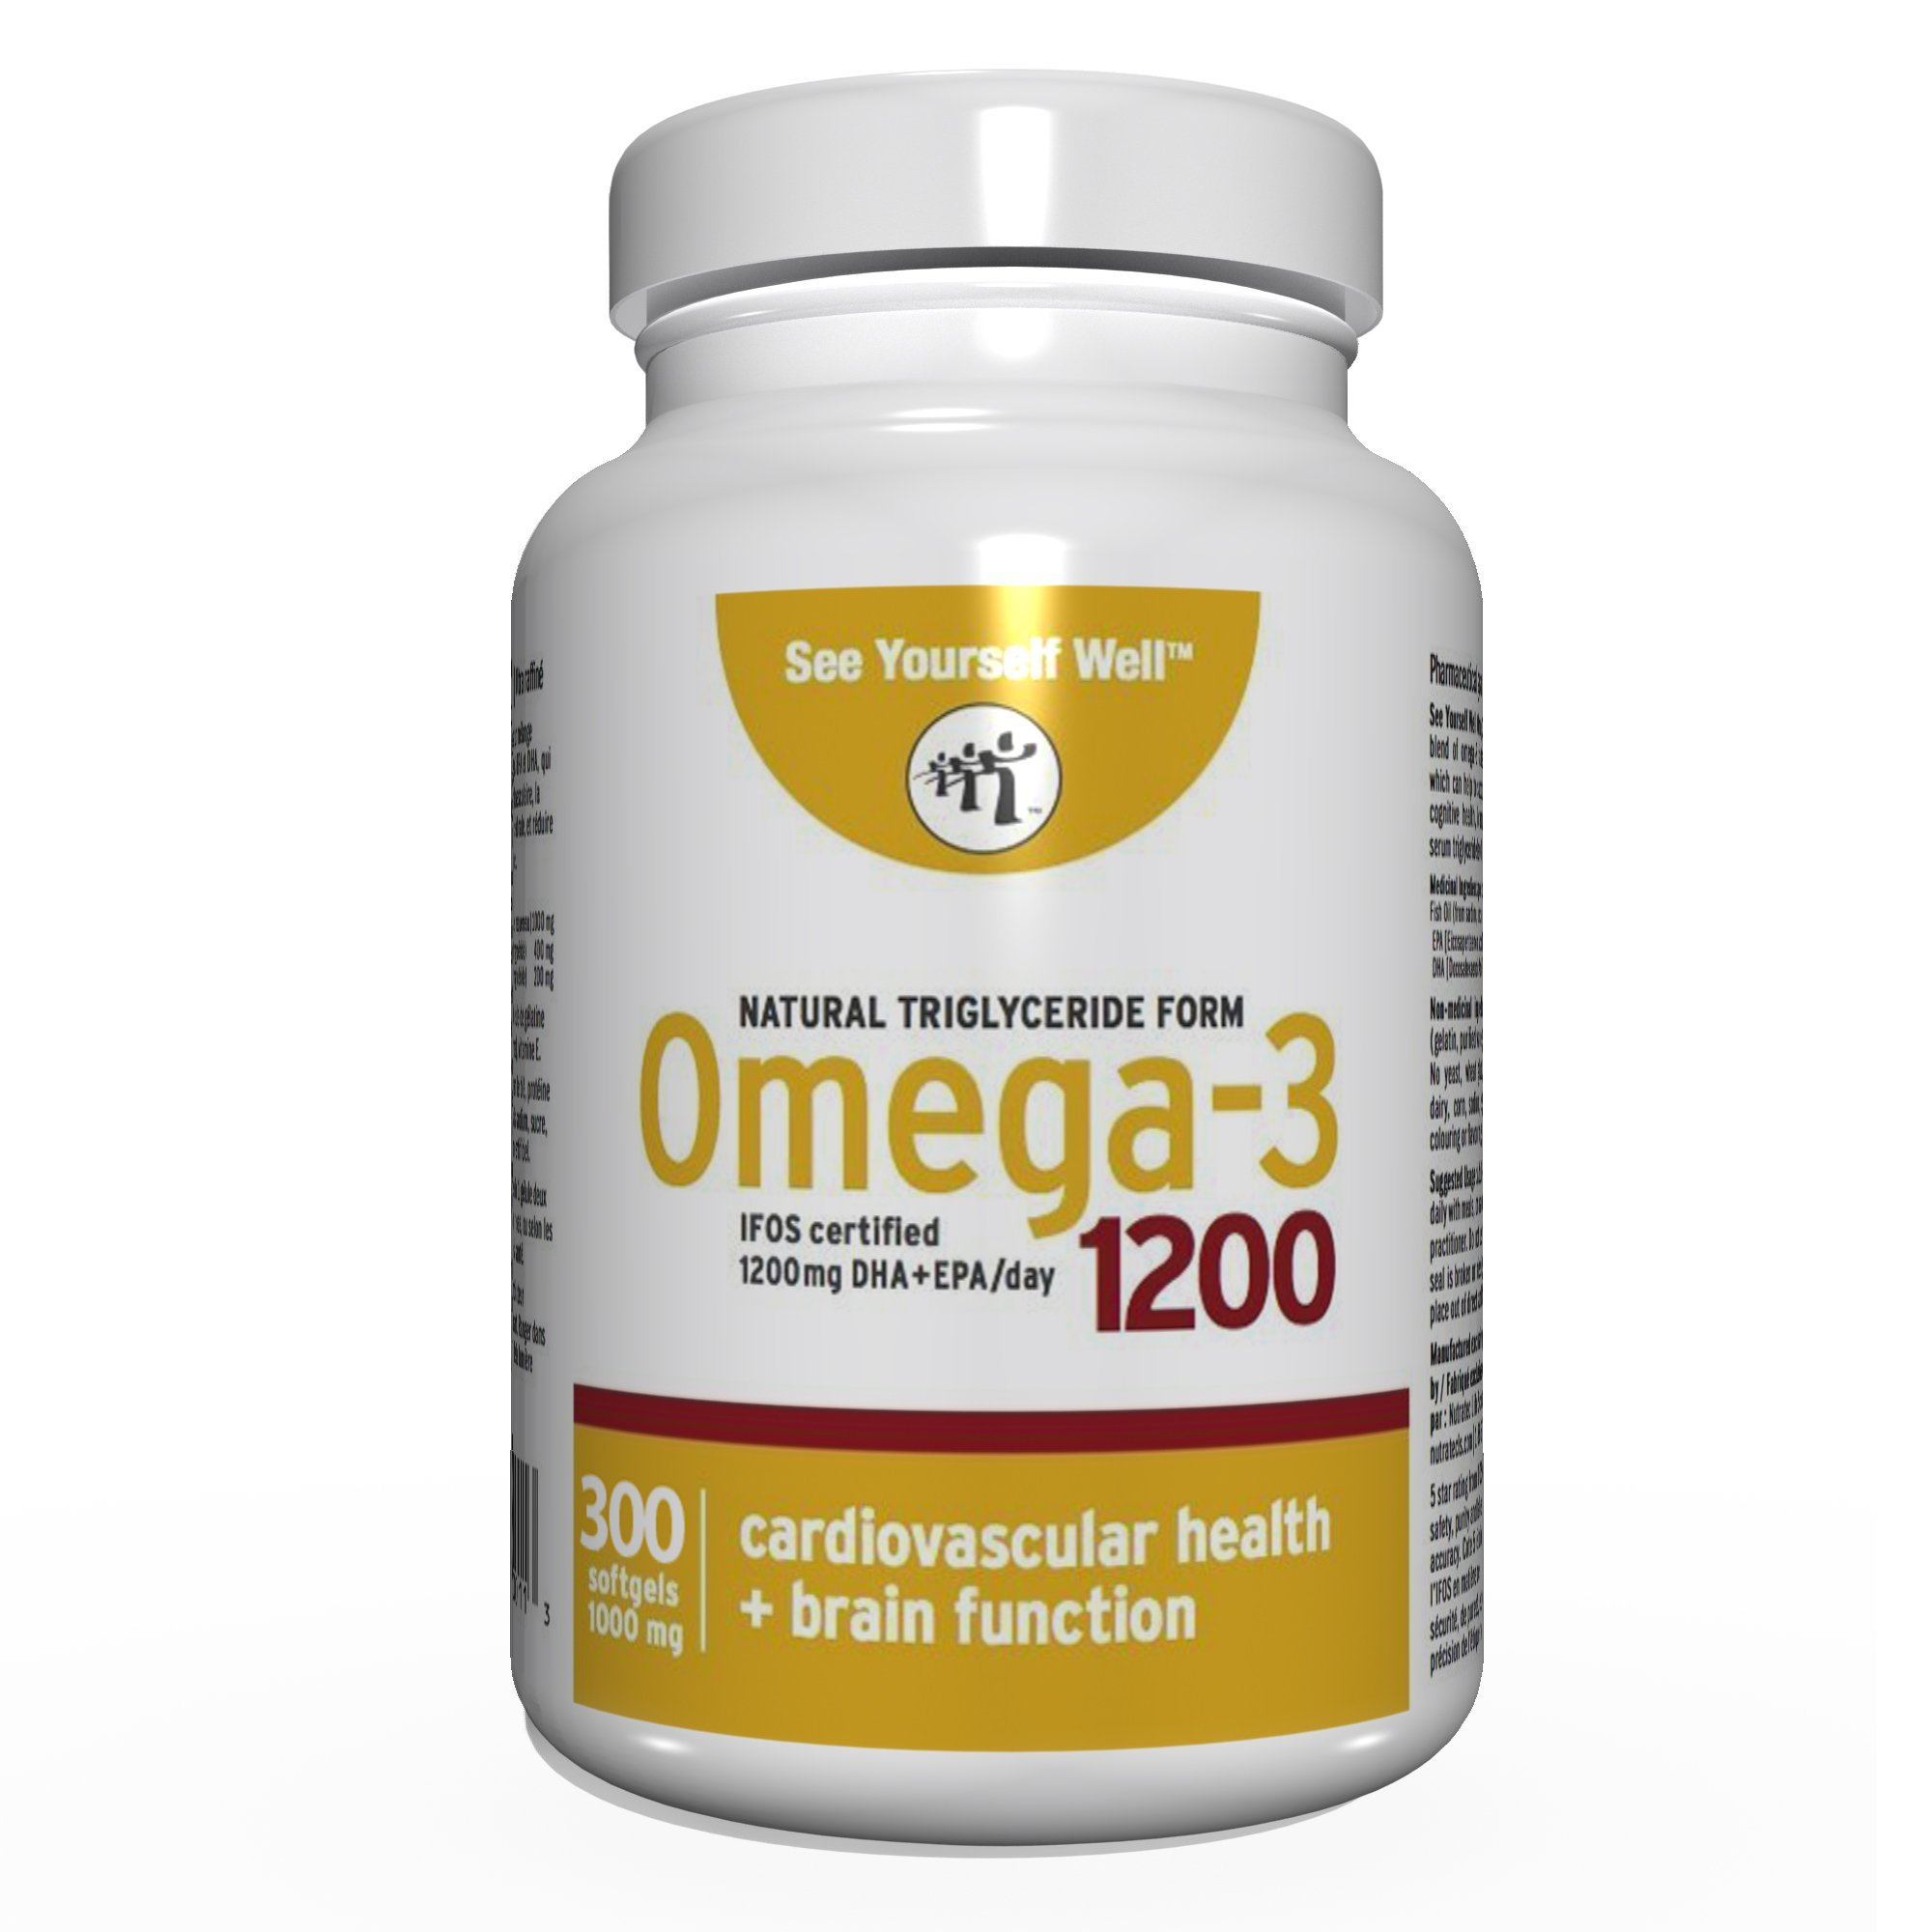 See Yourself Well Natural Triglyceride Form Omega 3 Fish Oil Softgels, 1200 (300 Count)